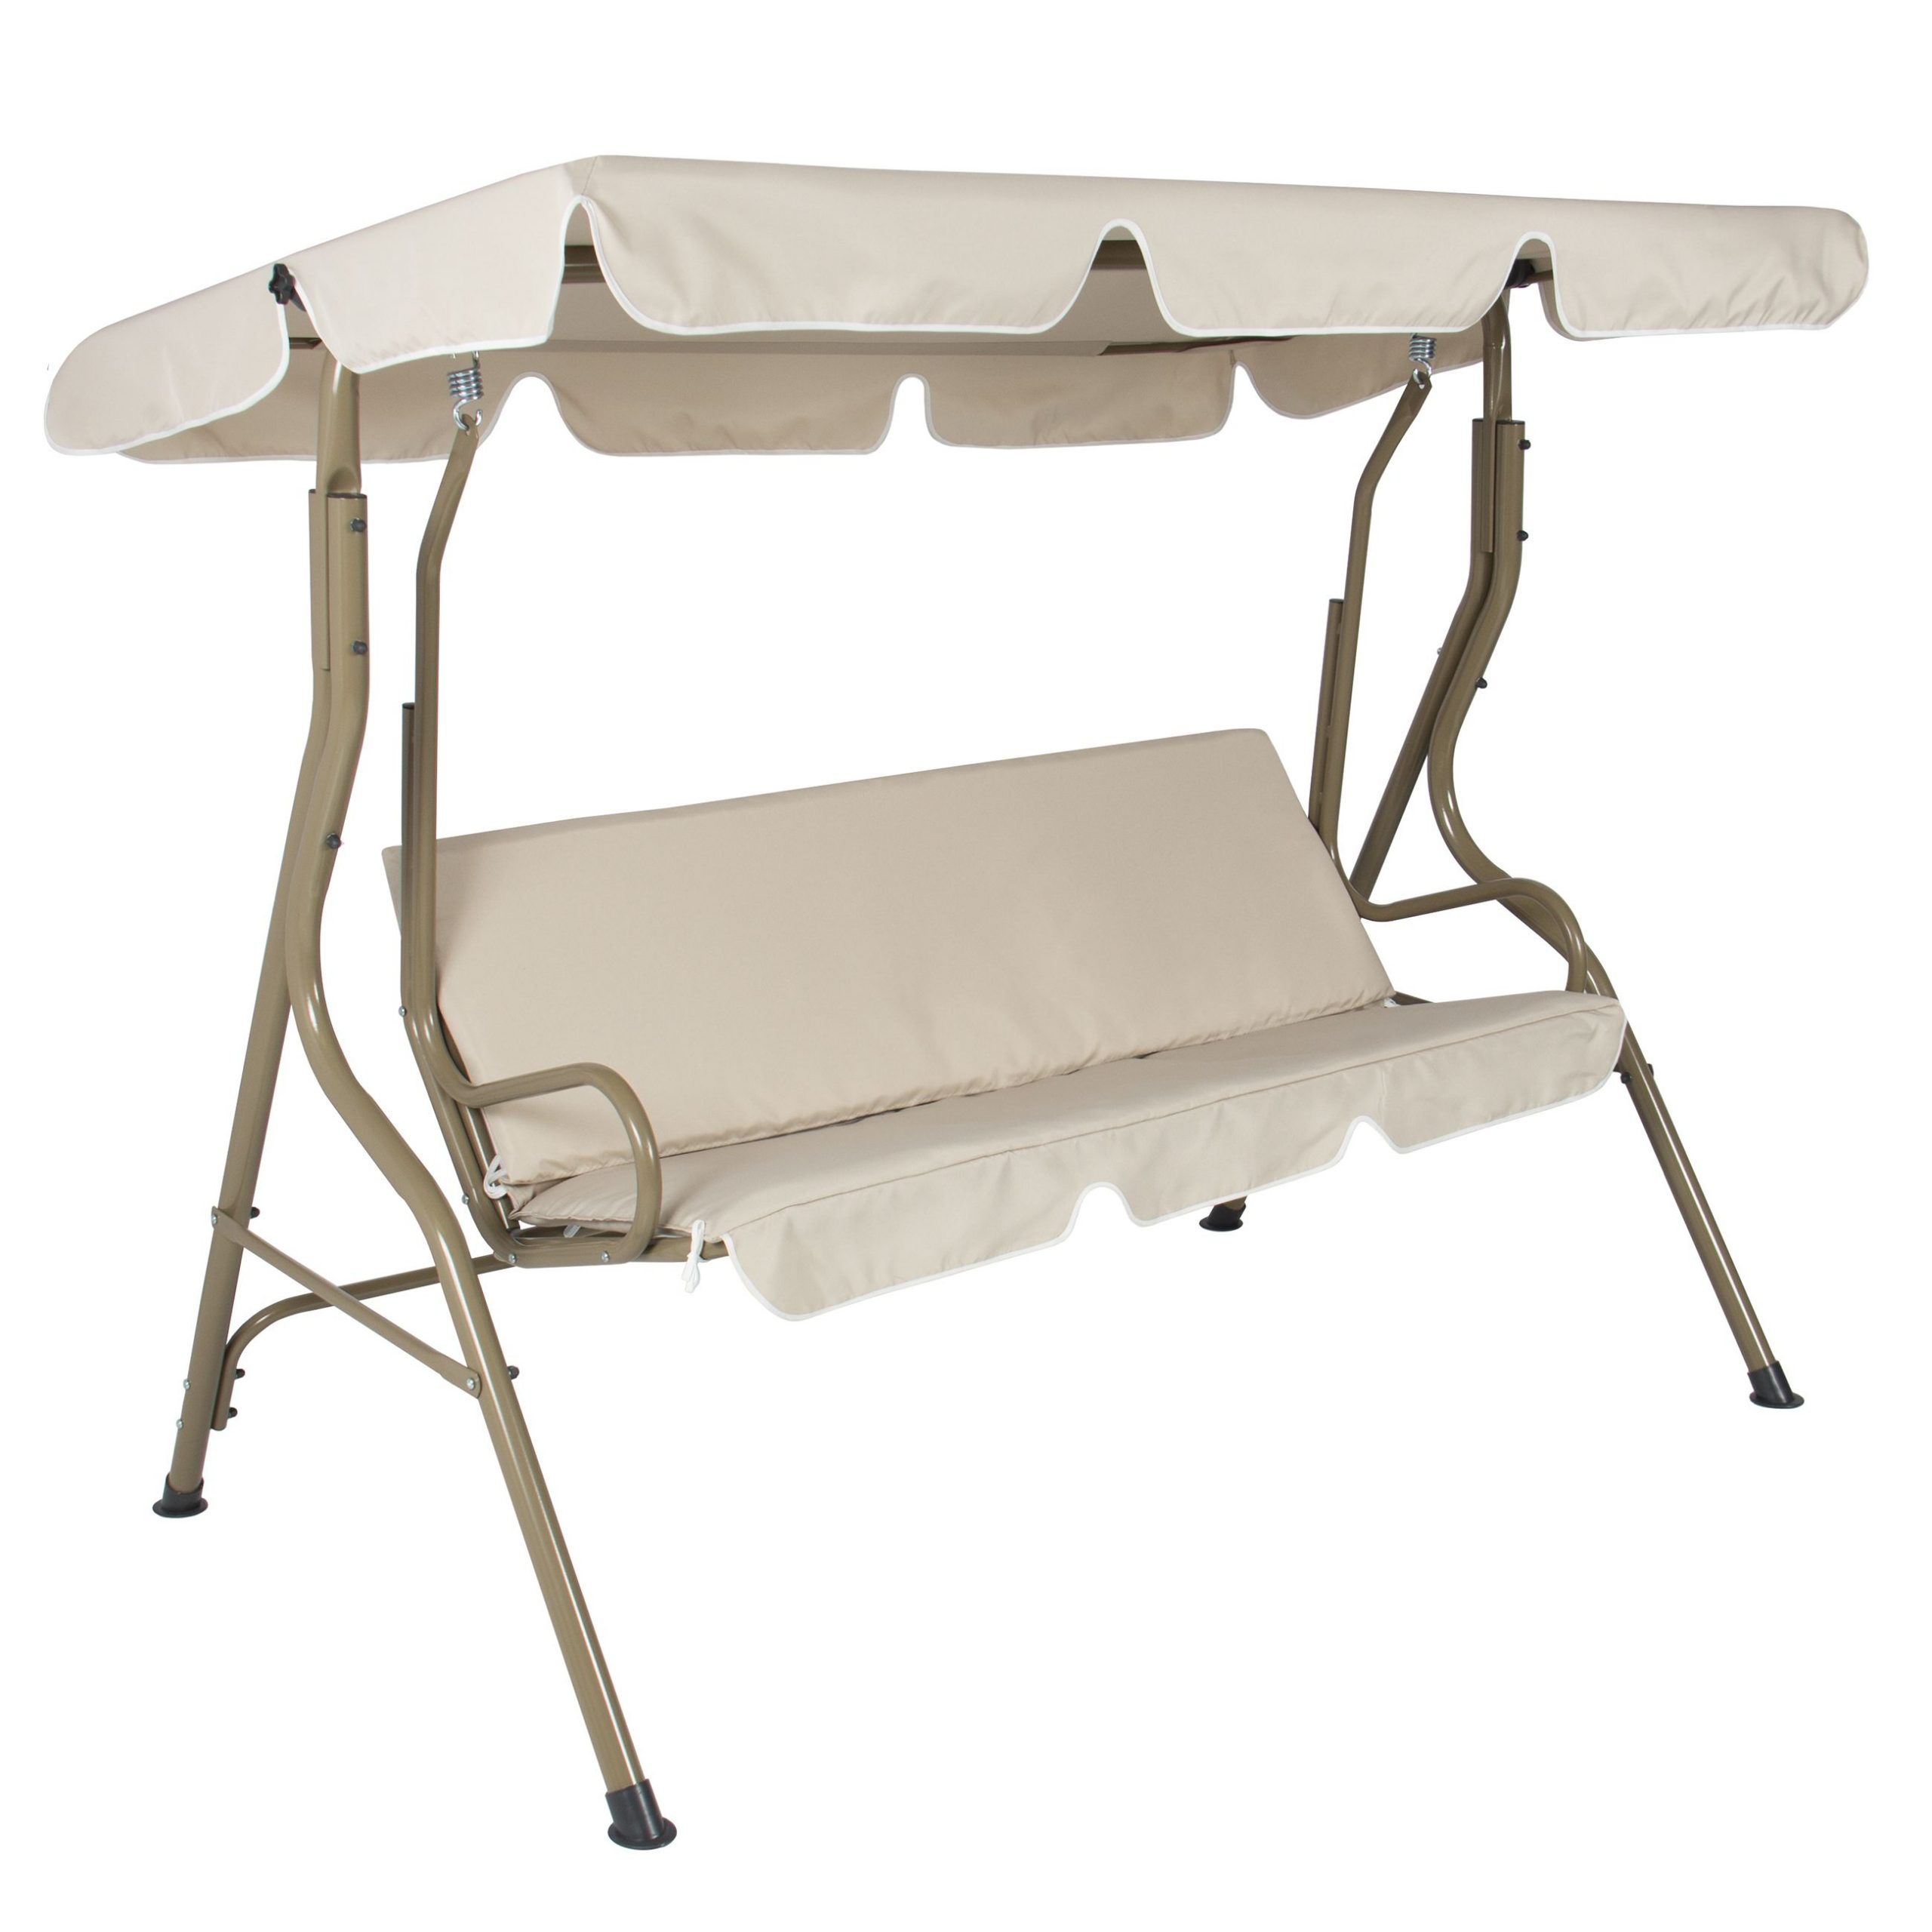 Featured Image of 2 Person Outdoor Convertible Canopy Swing Gliders With Removable Cushions Beige